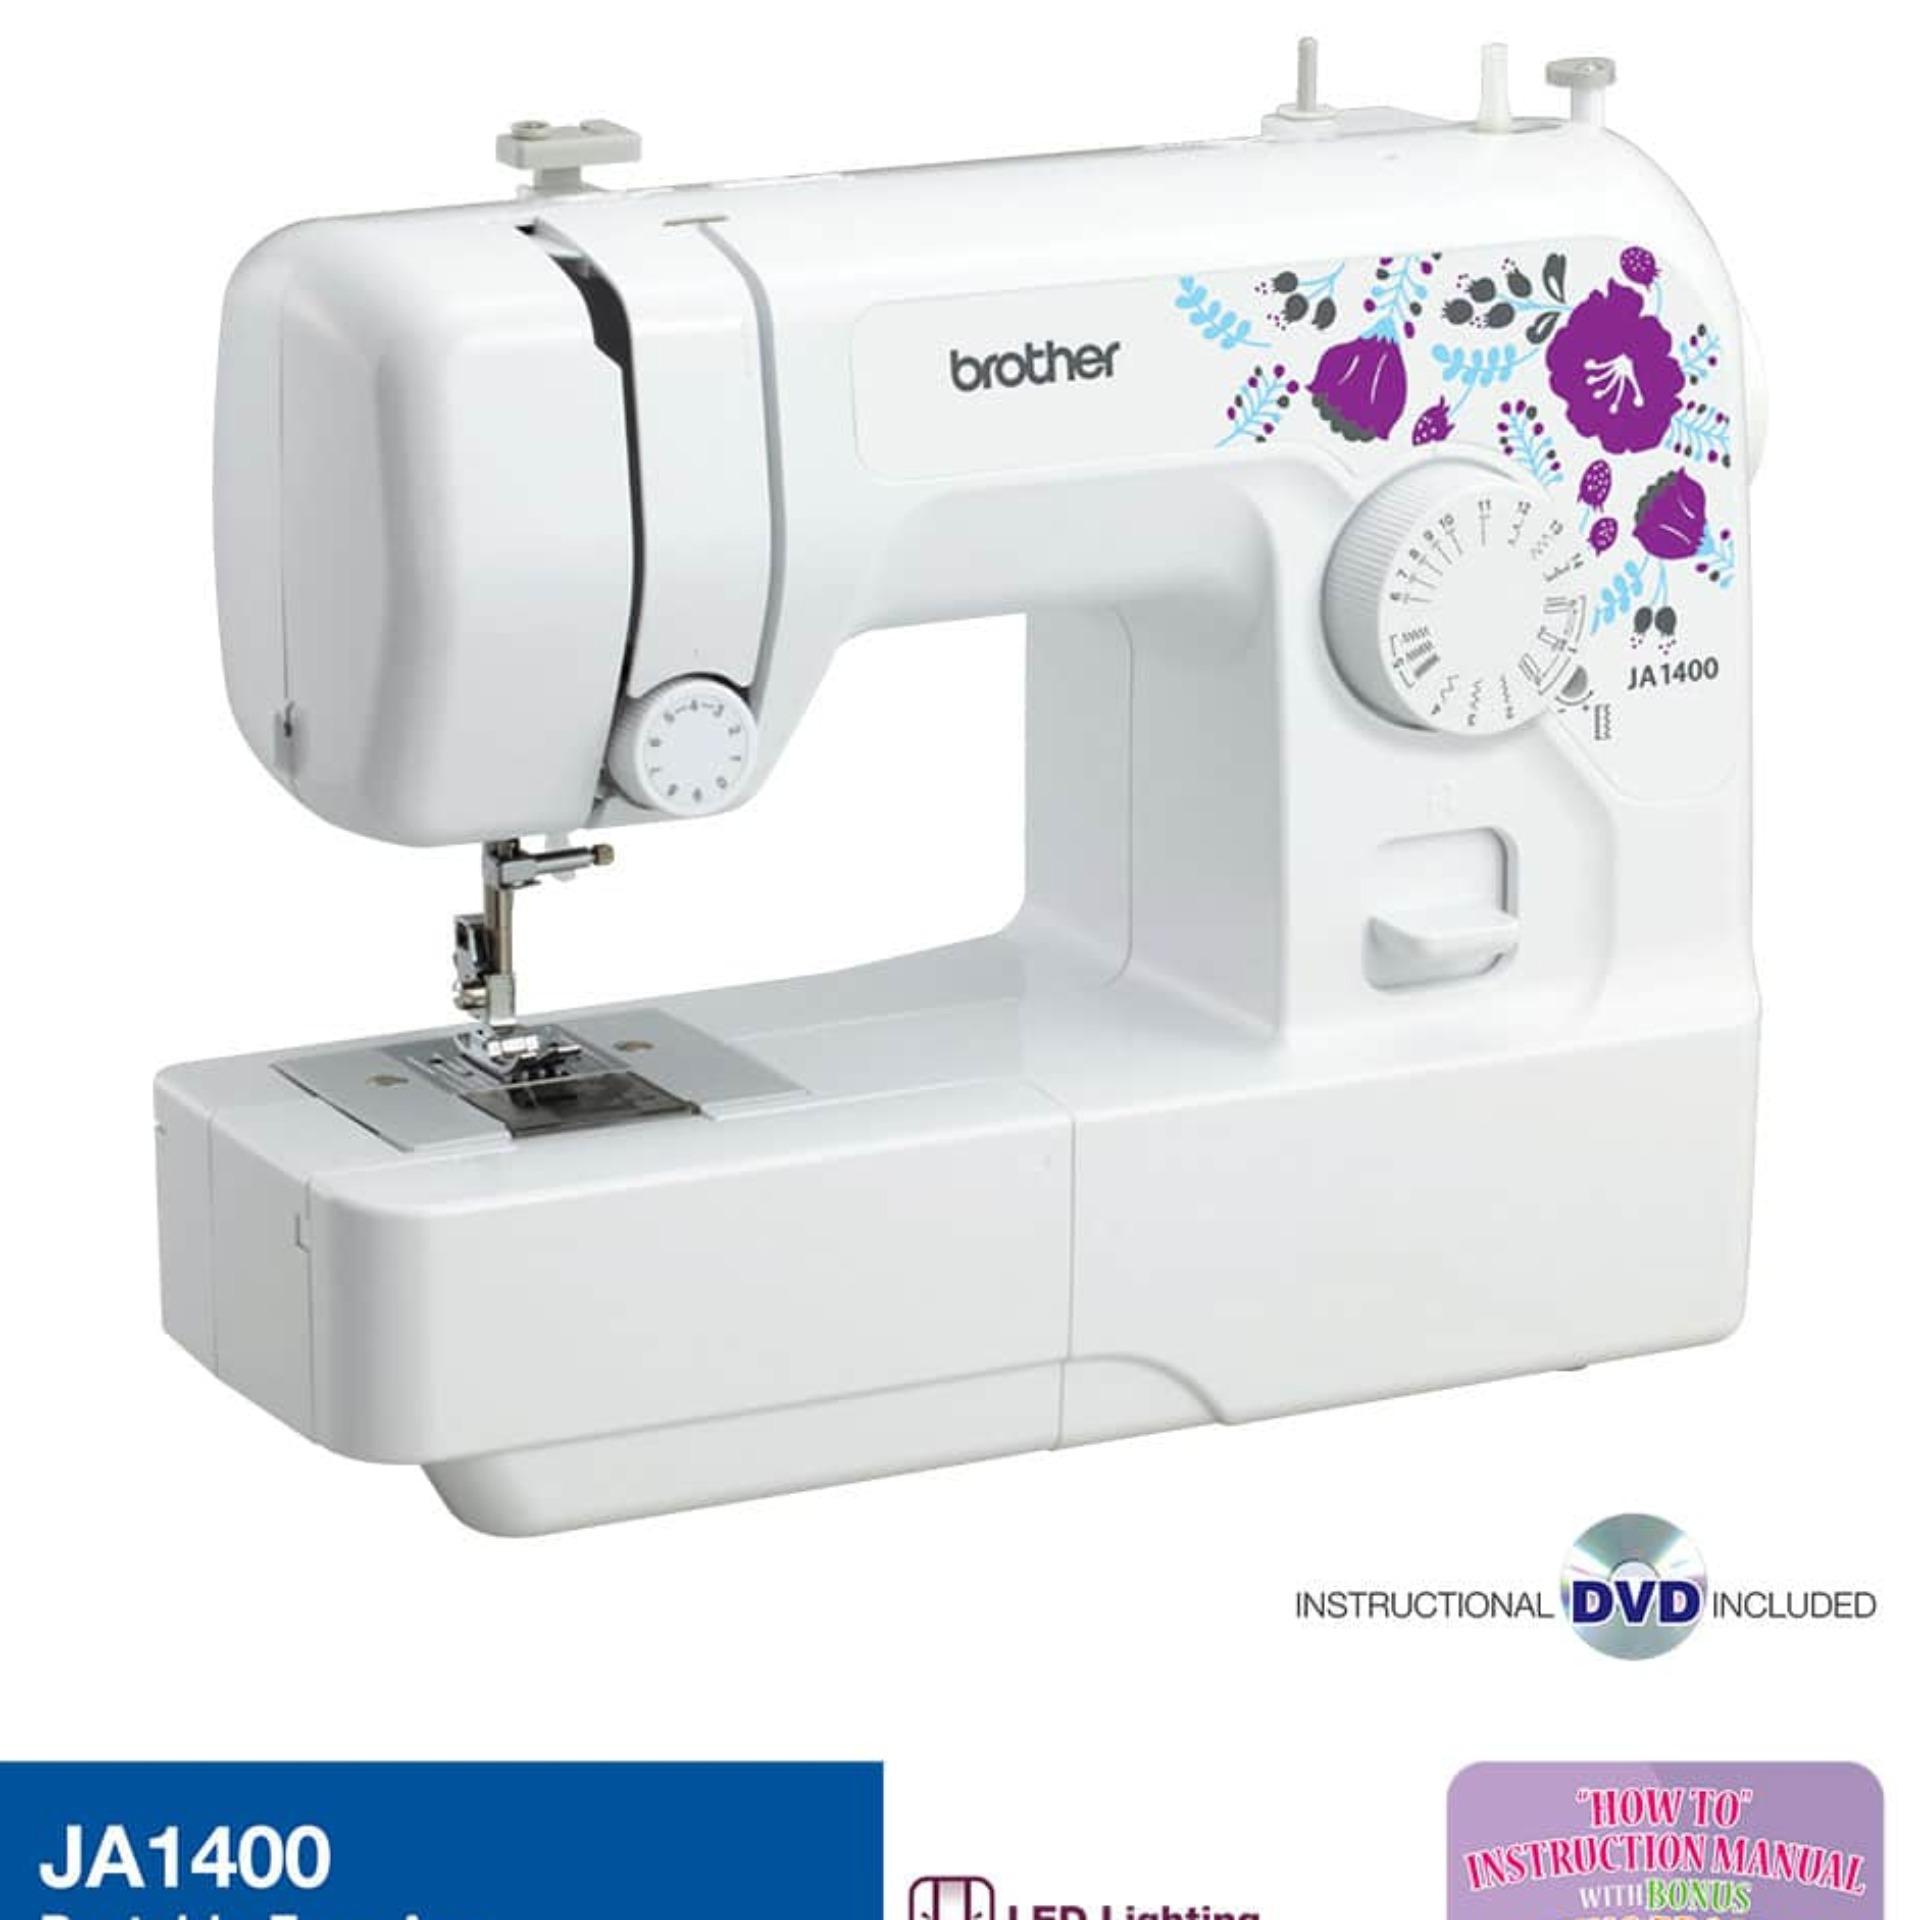 brother ja1400 home sewing machine